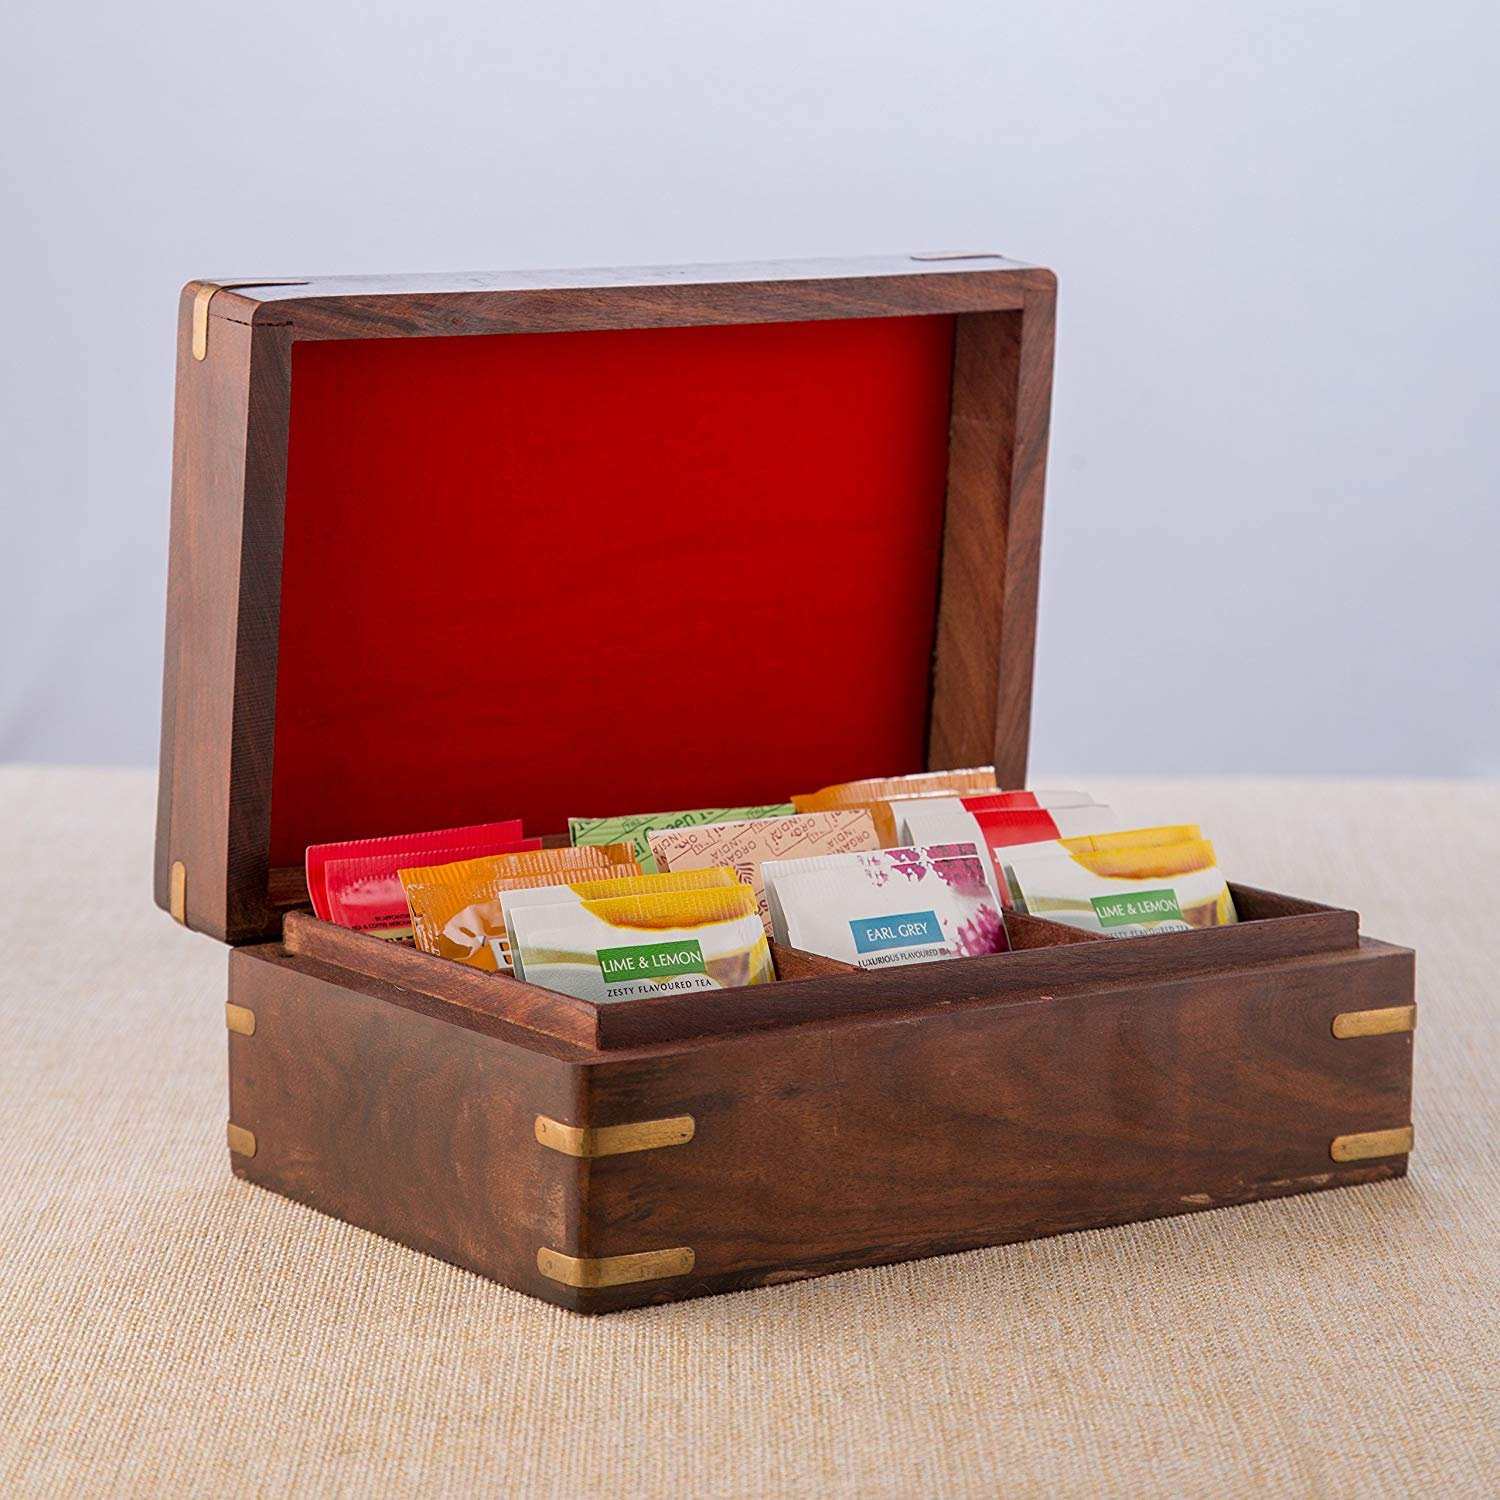 Wooden Tea Box Storage Chest Organizer Container Holder Rack With 9 Storage Compartments For Assorted Variety Of Tea Bags Loose Tea Spices & Herbs Natural Eco Friendly Vintage Rustic Decorative Box by The Great Indian Bazaar